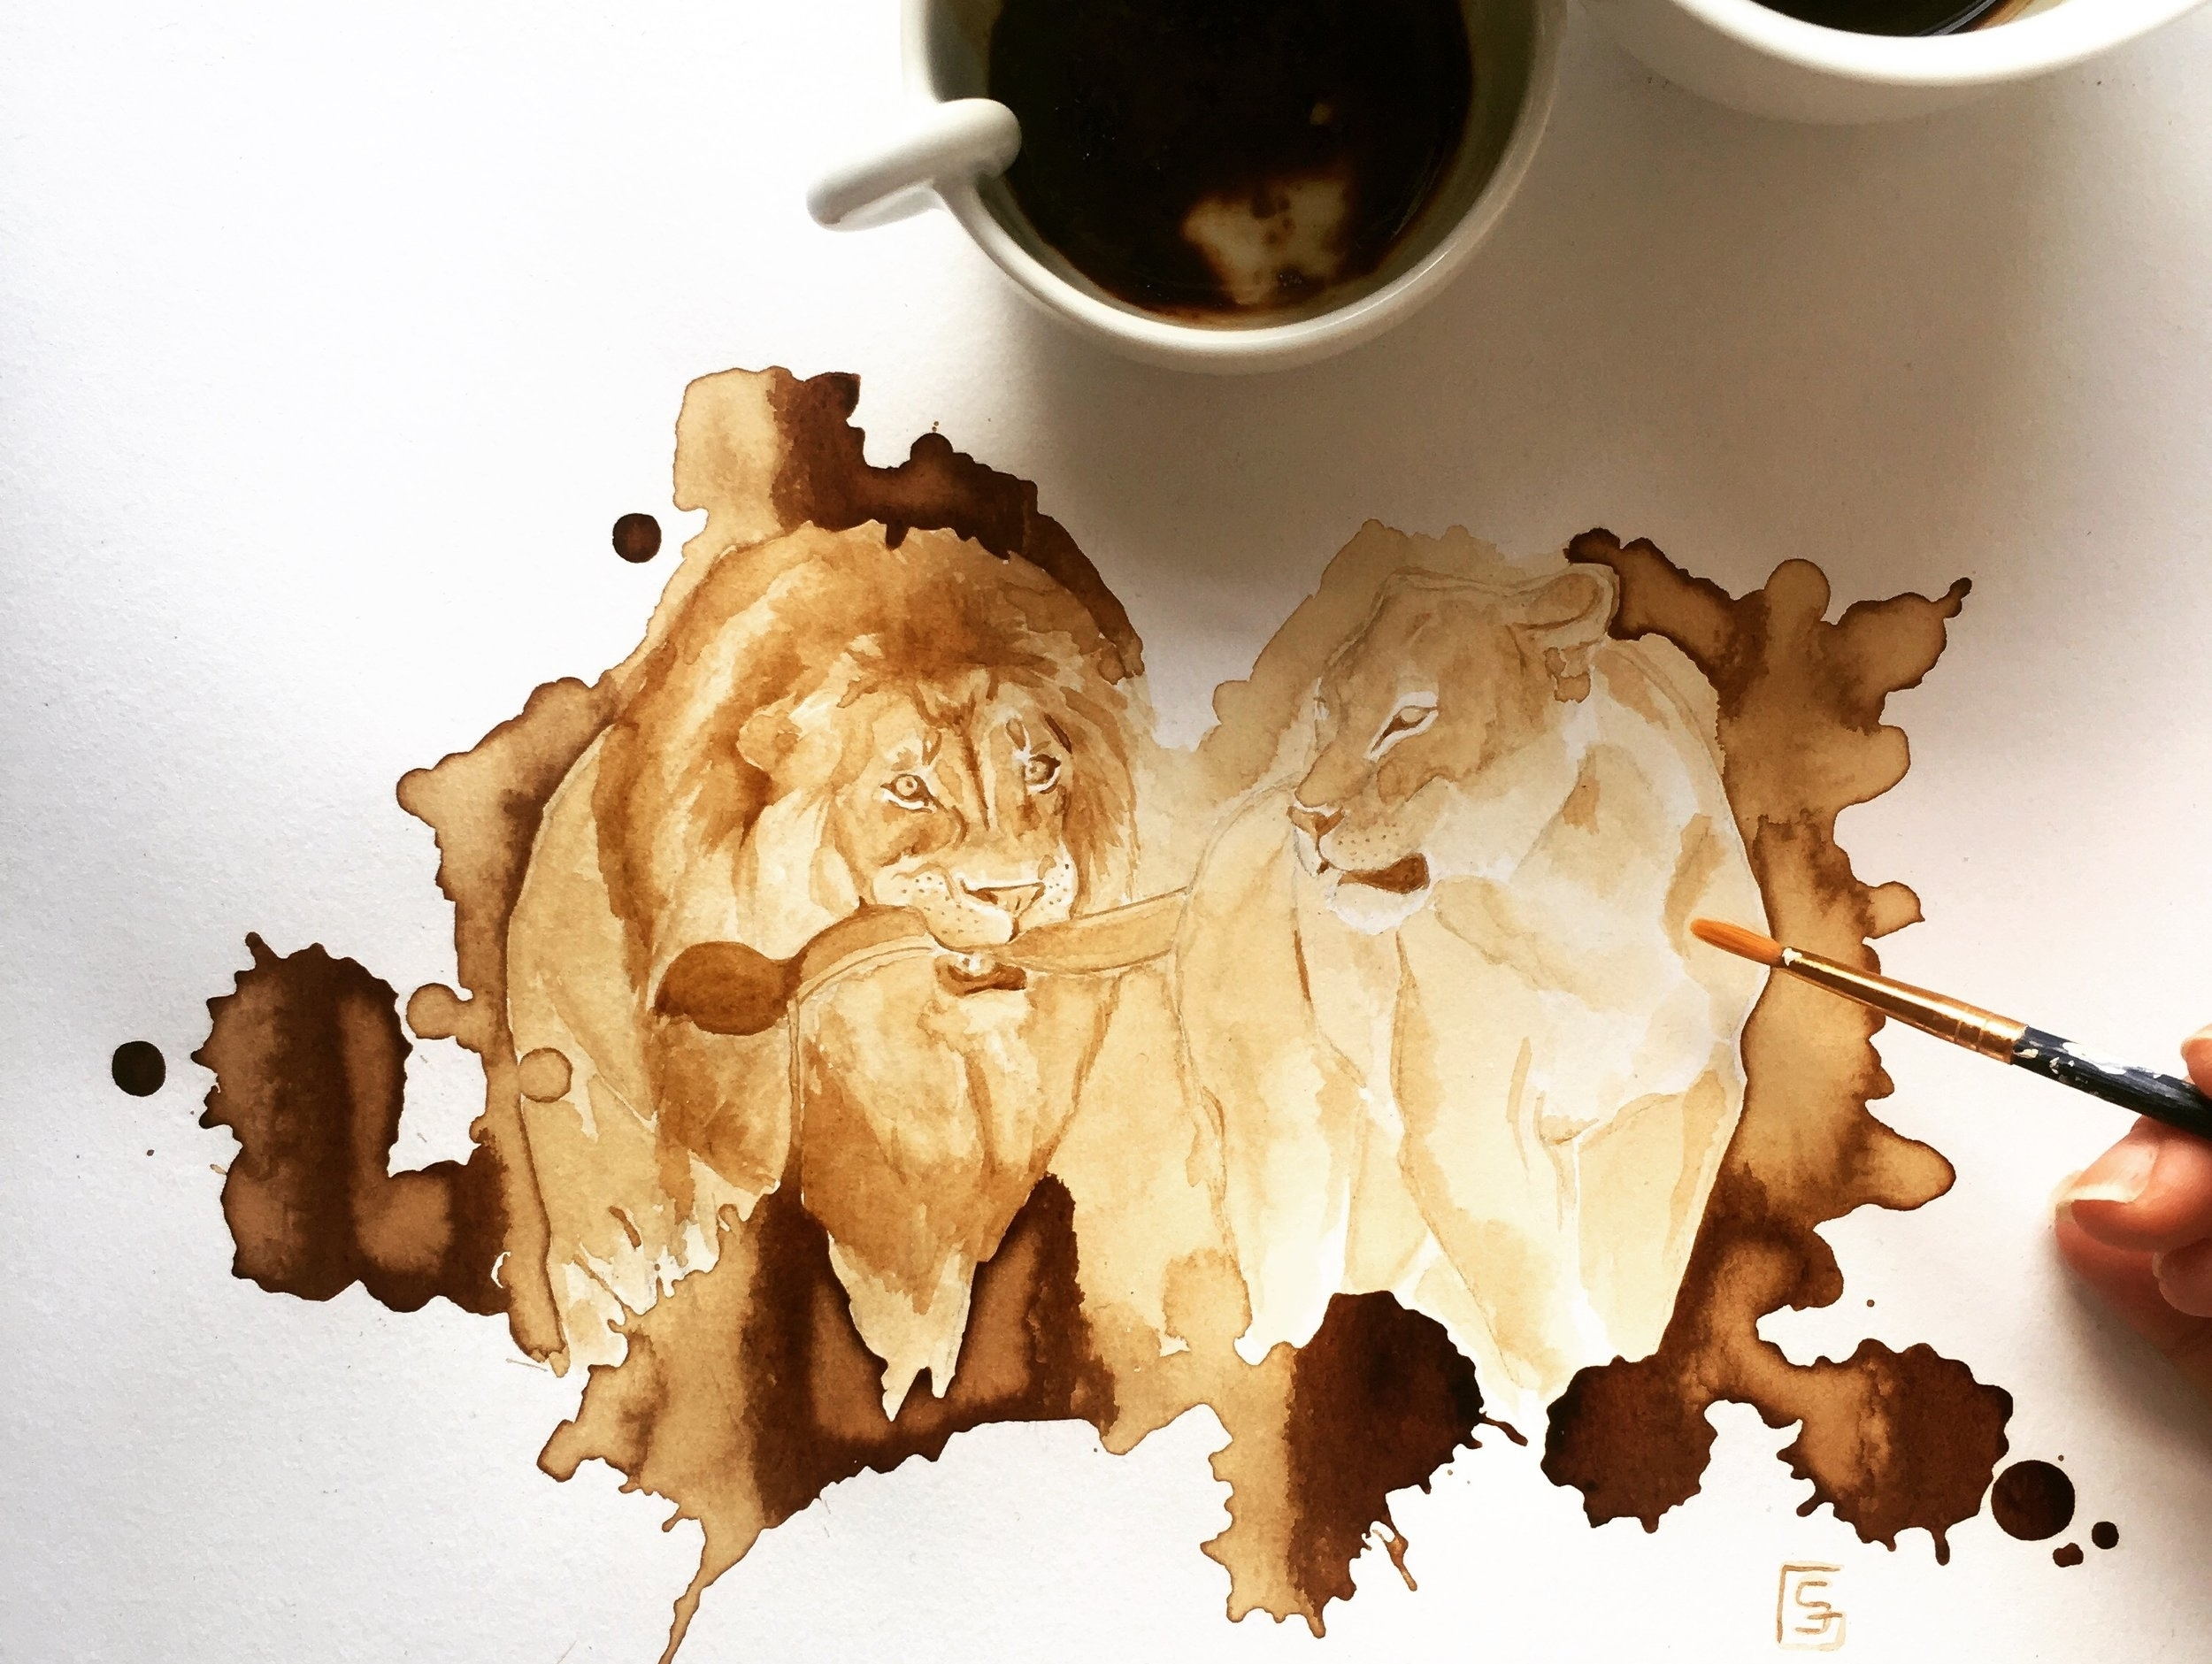 COFFEE ART PAINTING - Paintings made with eco-friendly, toxic-free sustainable art materials, raising awareness about the current status of endangered species.